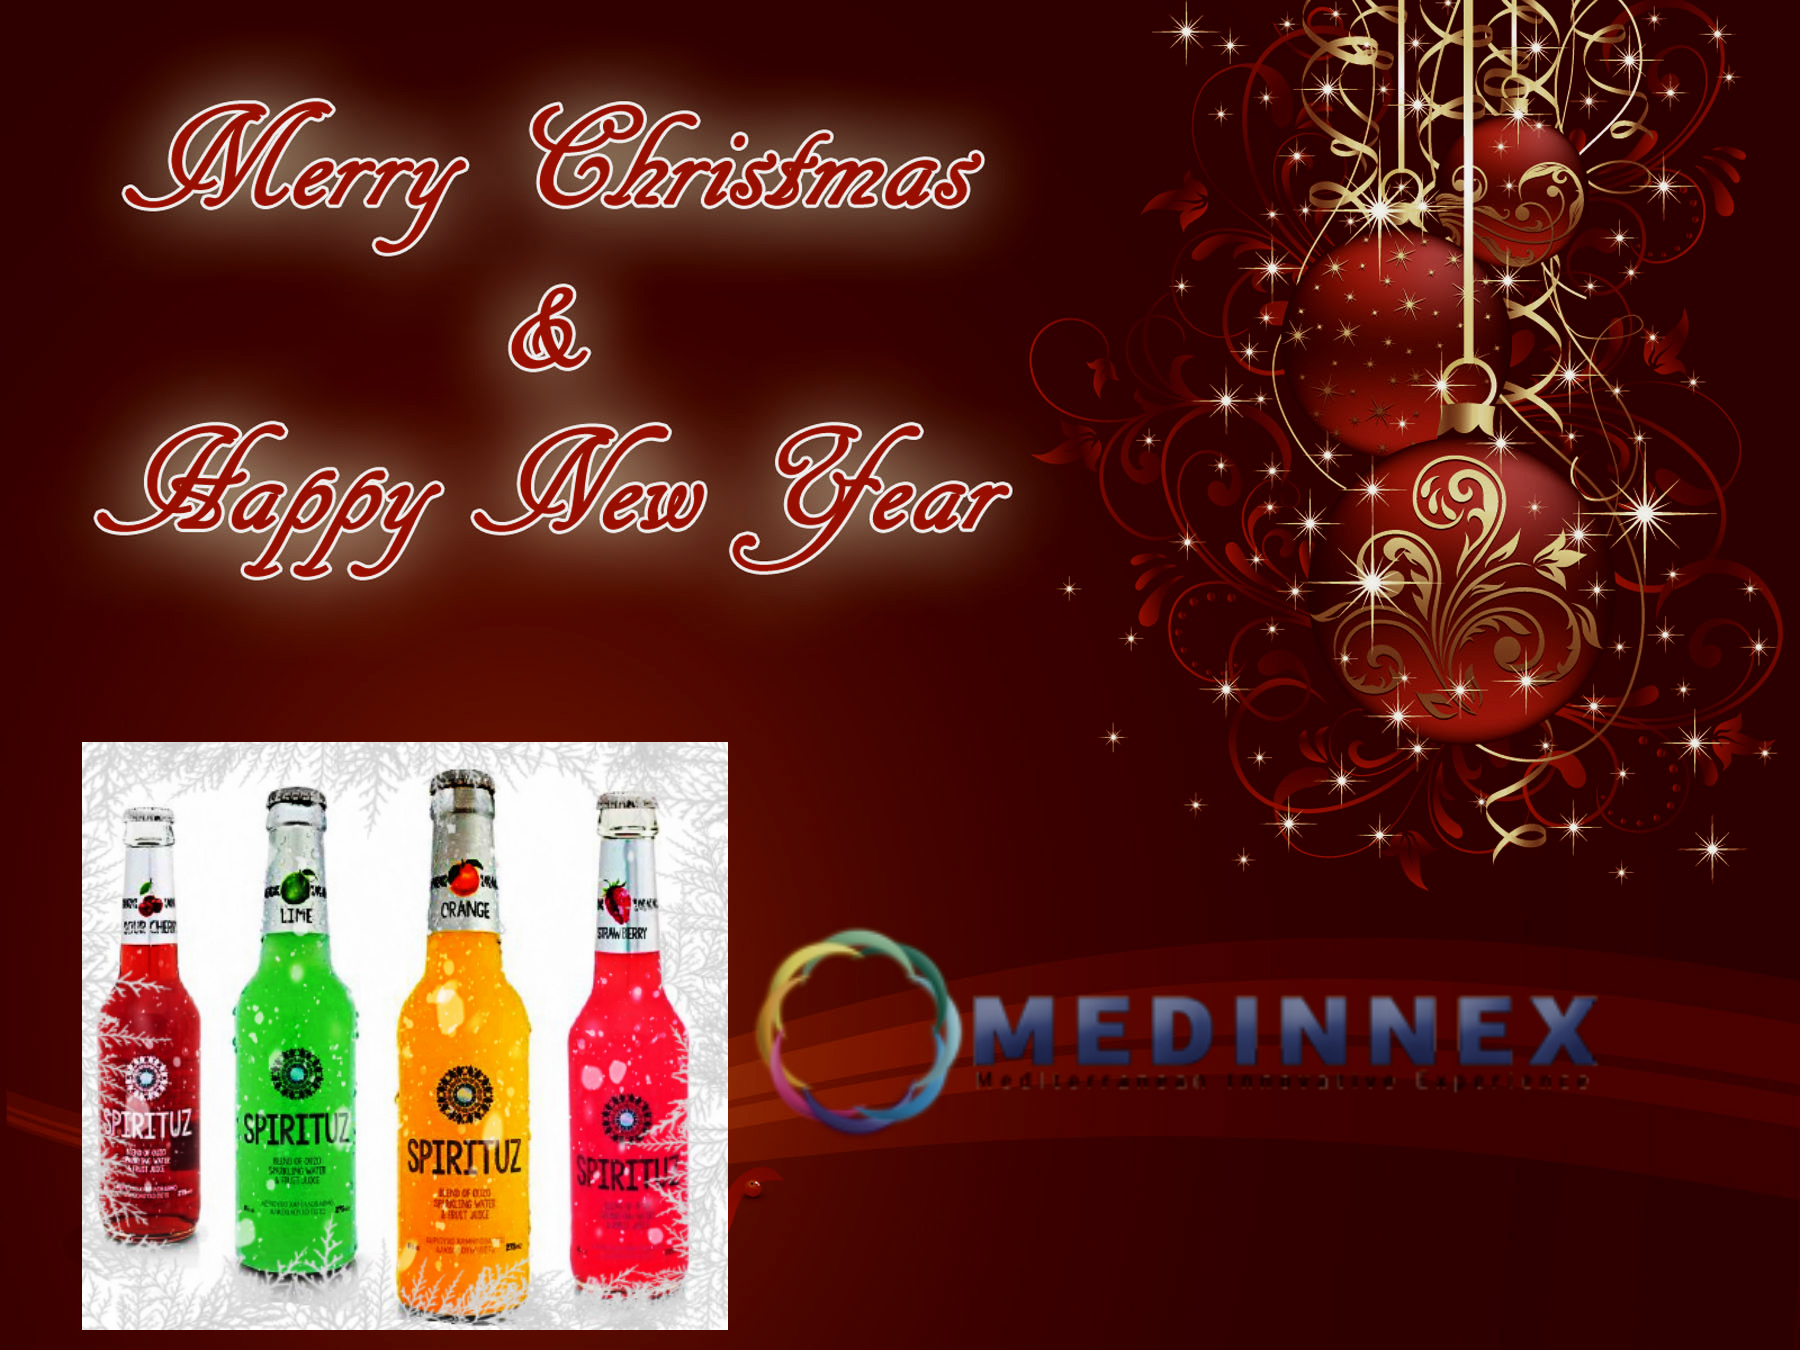 merry-christmas-and-happy-new-year-2015-wallpapers